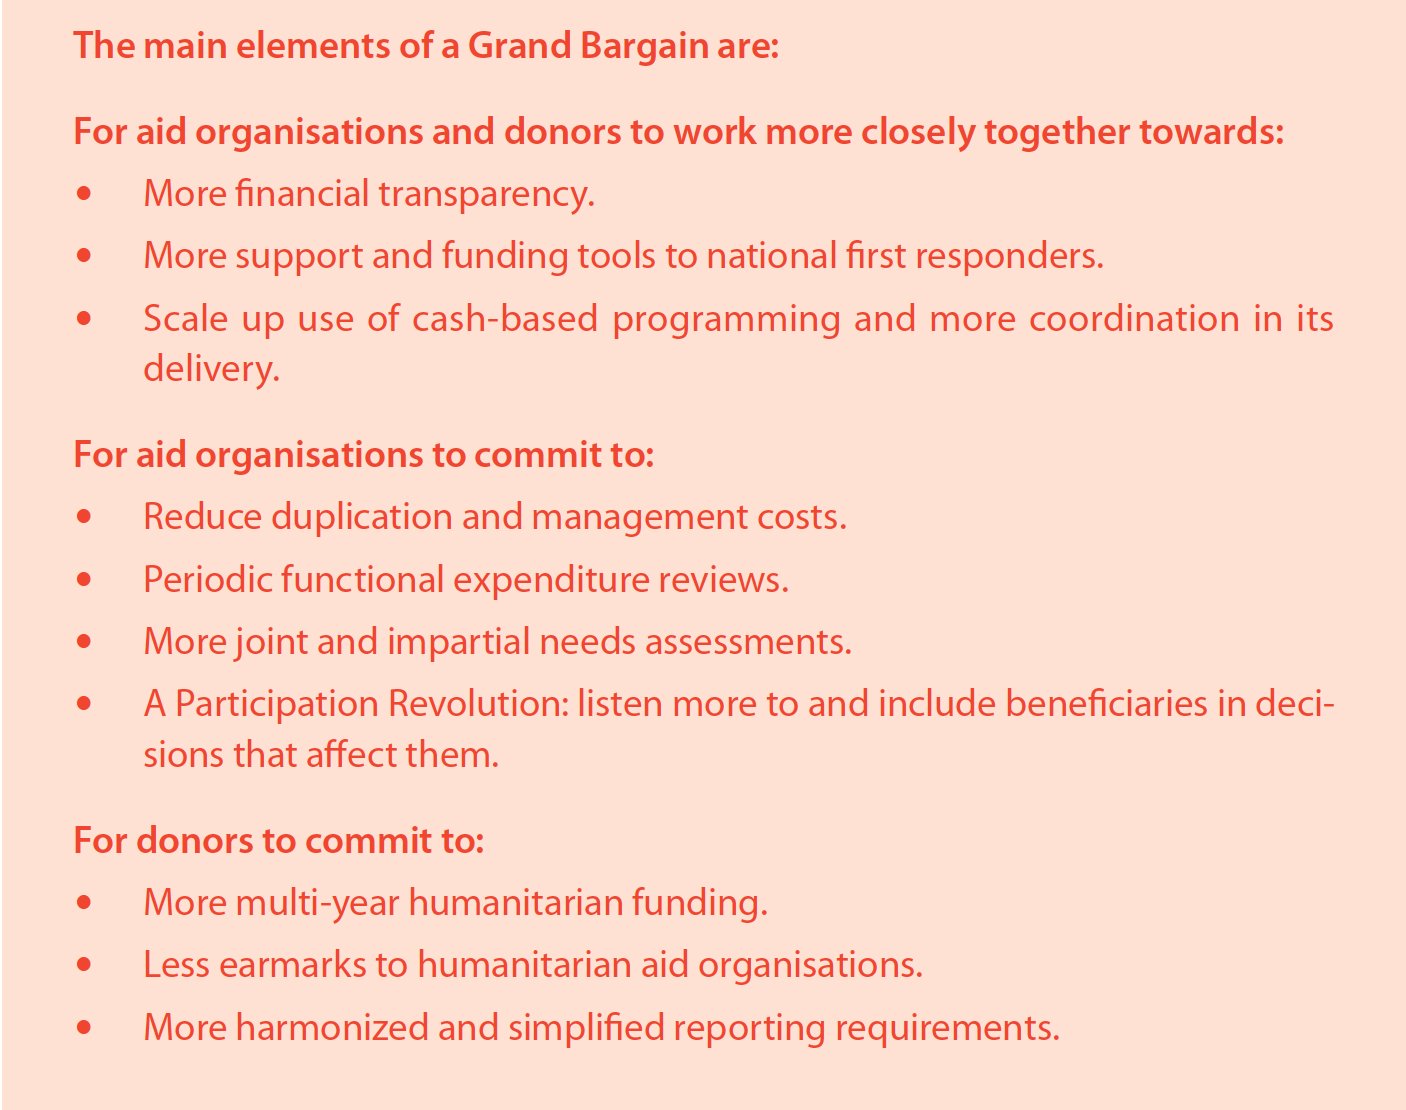 The main elements of a Grand Bargain